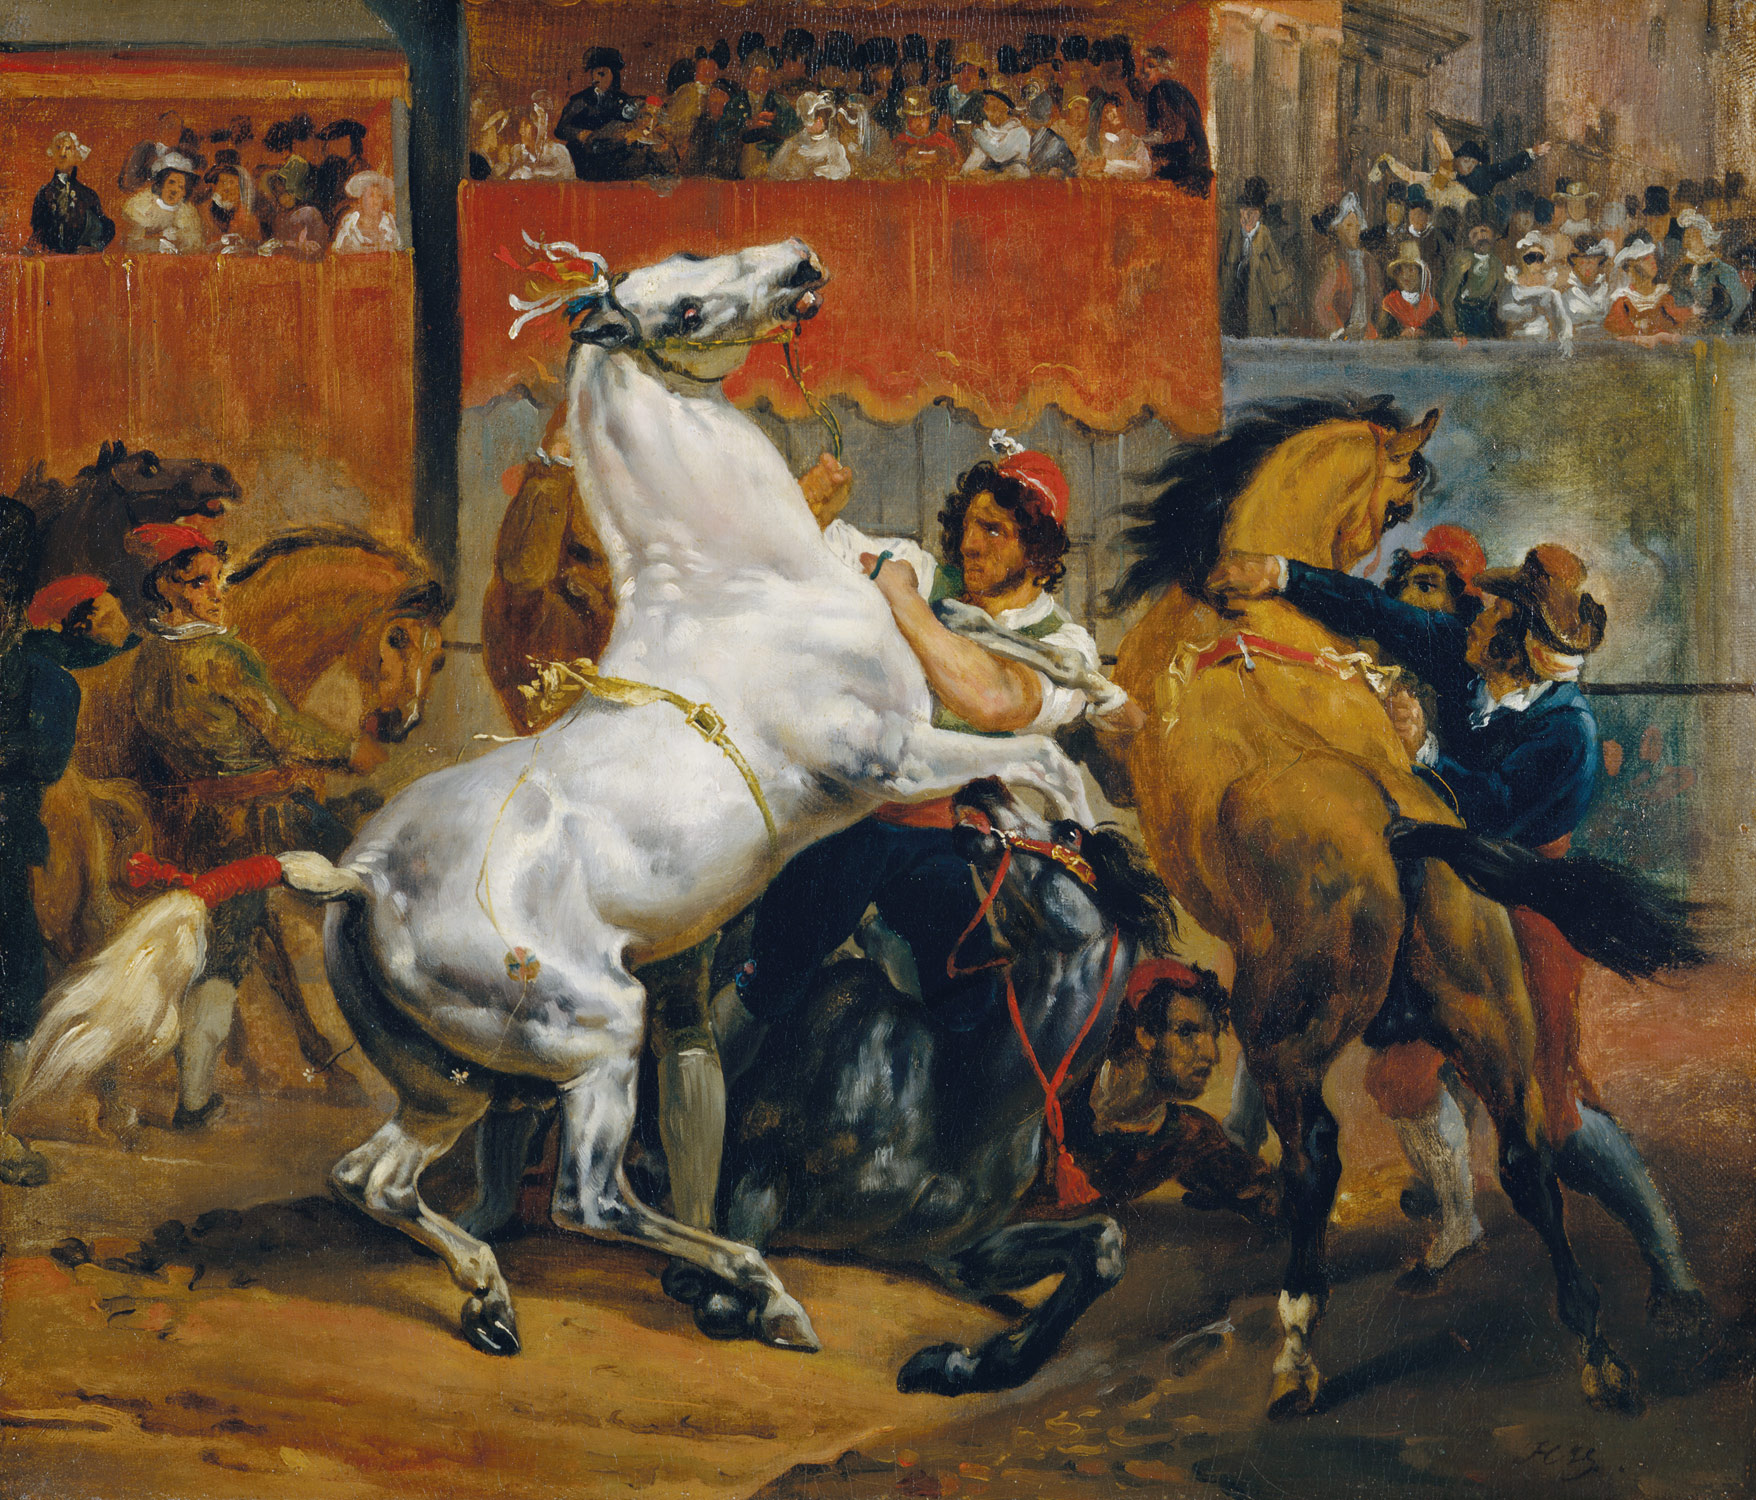 The Start of the Race of the Riderless Horses, Horace Vernet, c.1820,                   Oil on canvas, 18 1/8 x 21 1/4 in.